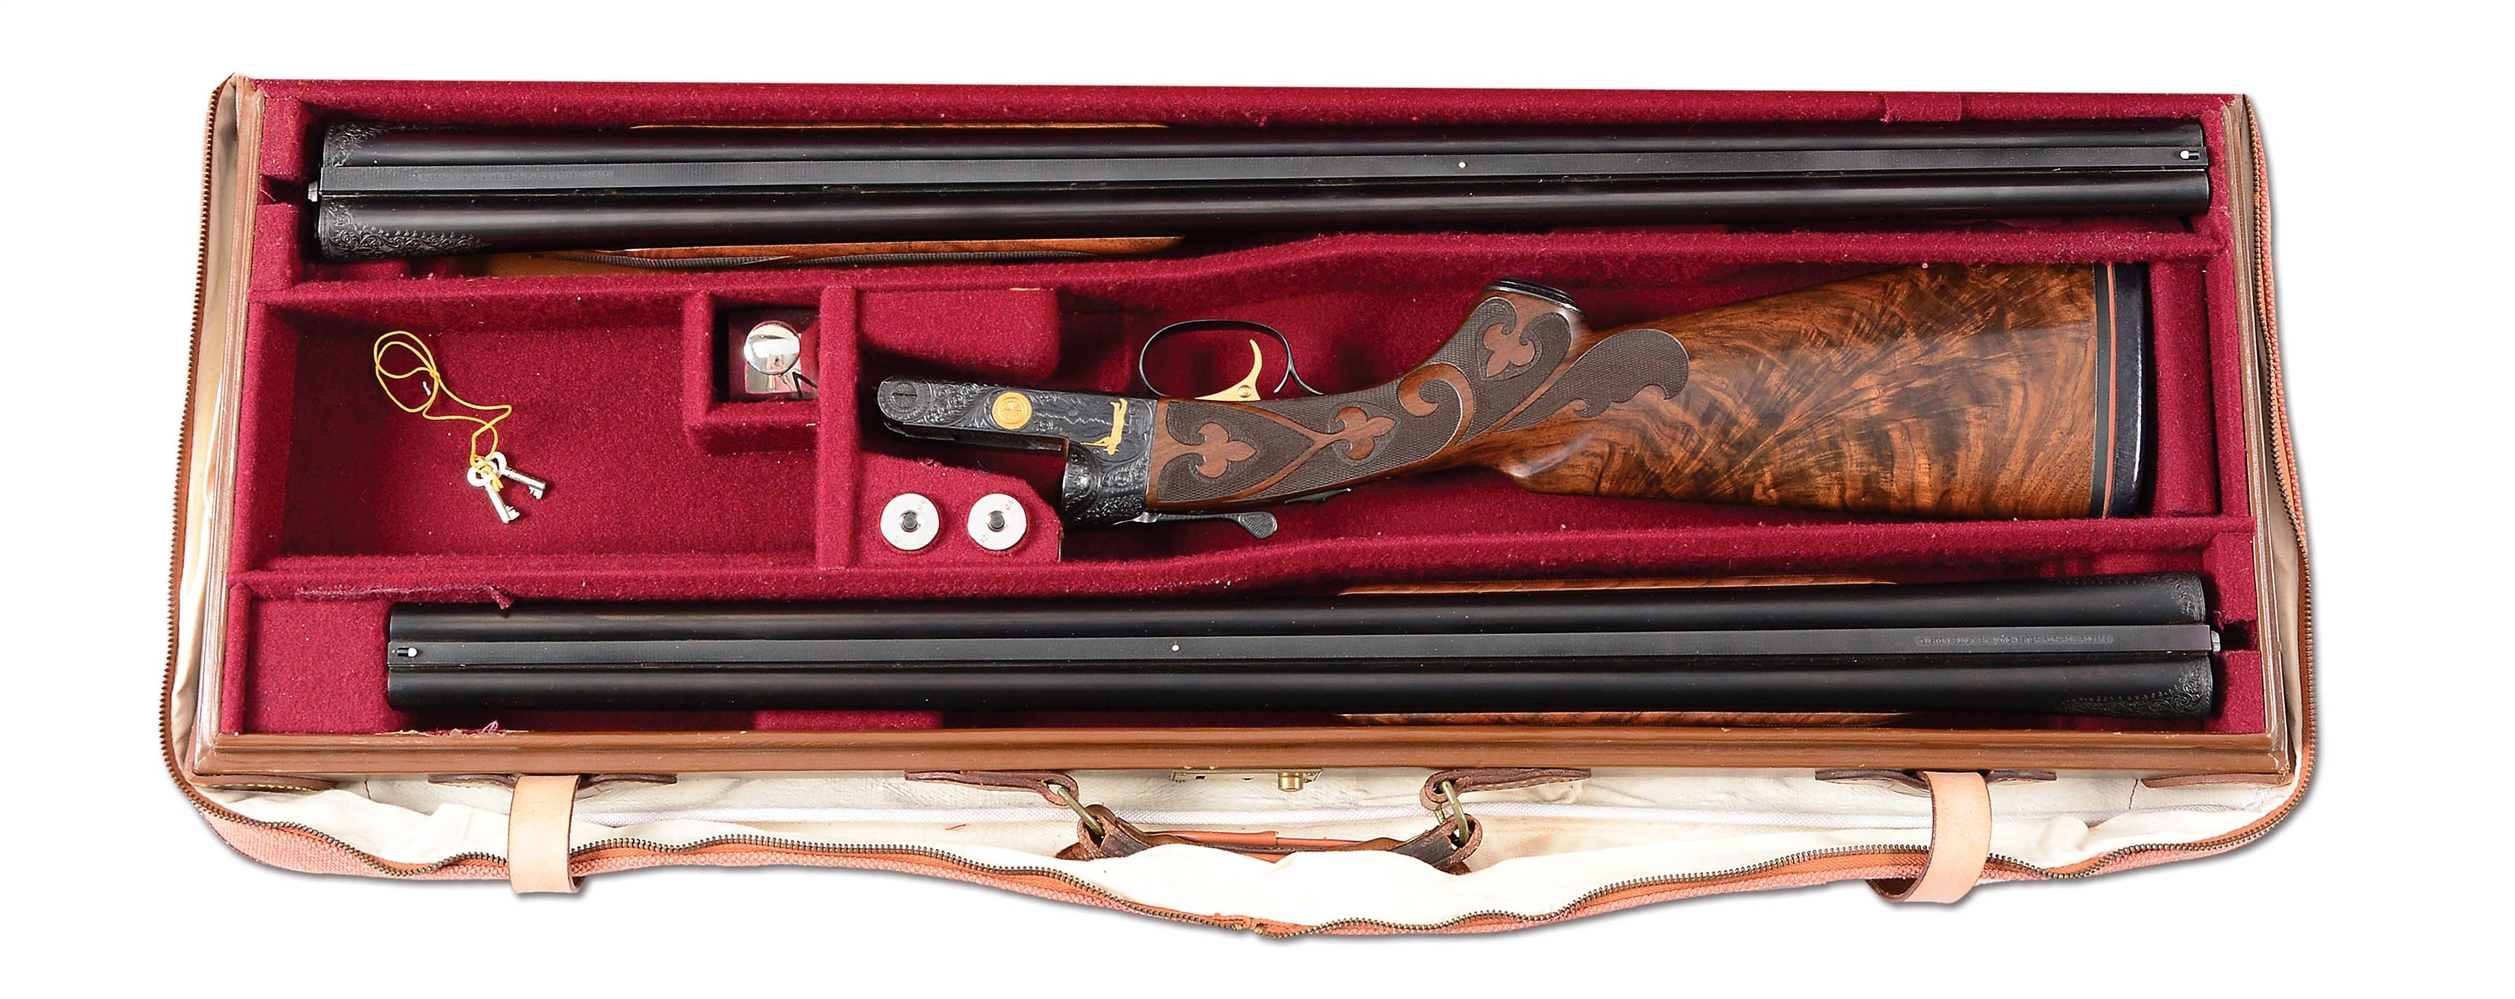 (C) ONE OF THE MOST ICONIC MODEL 21 WINCHESTERS EVER MADE - A 12 GAUGE GRAND AMERICAN BUILT FOR ROY ROGERS WITH FULL DOCUMENTATION, EXTRA BARRELS AND CASE, EXHIBITED AT ROY ROGERS/ DALE EVANS MUSEUM.